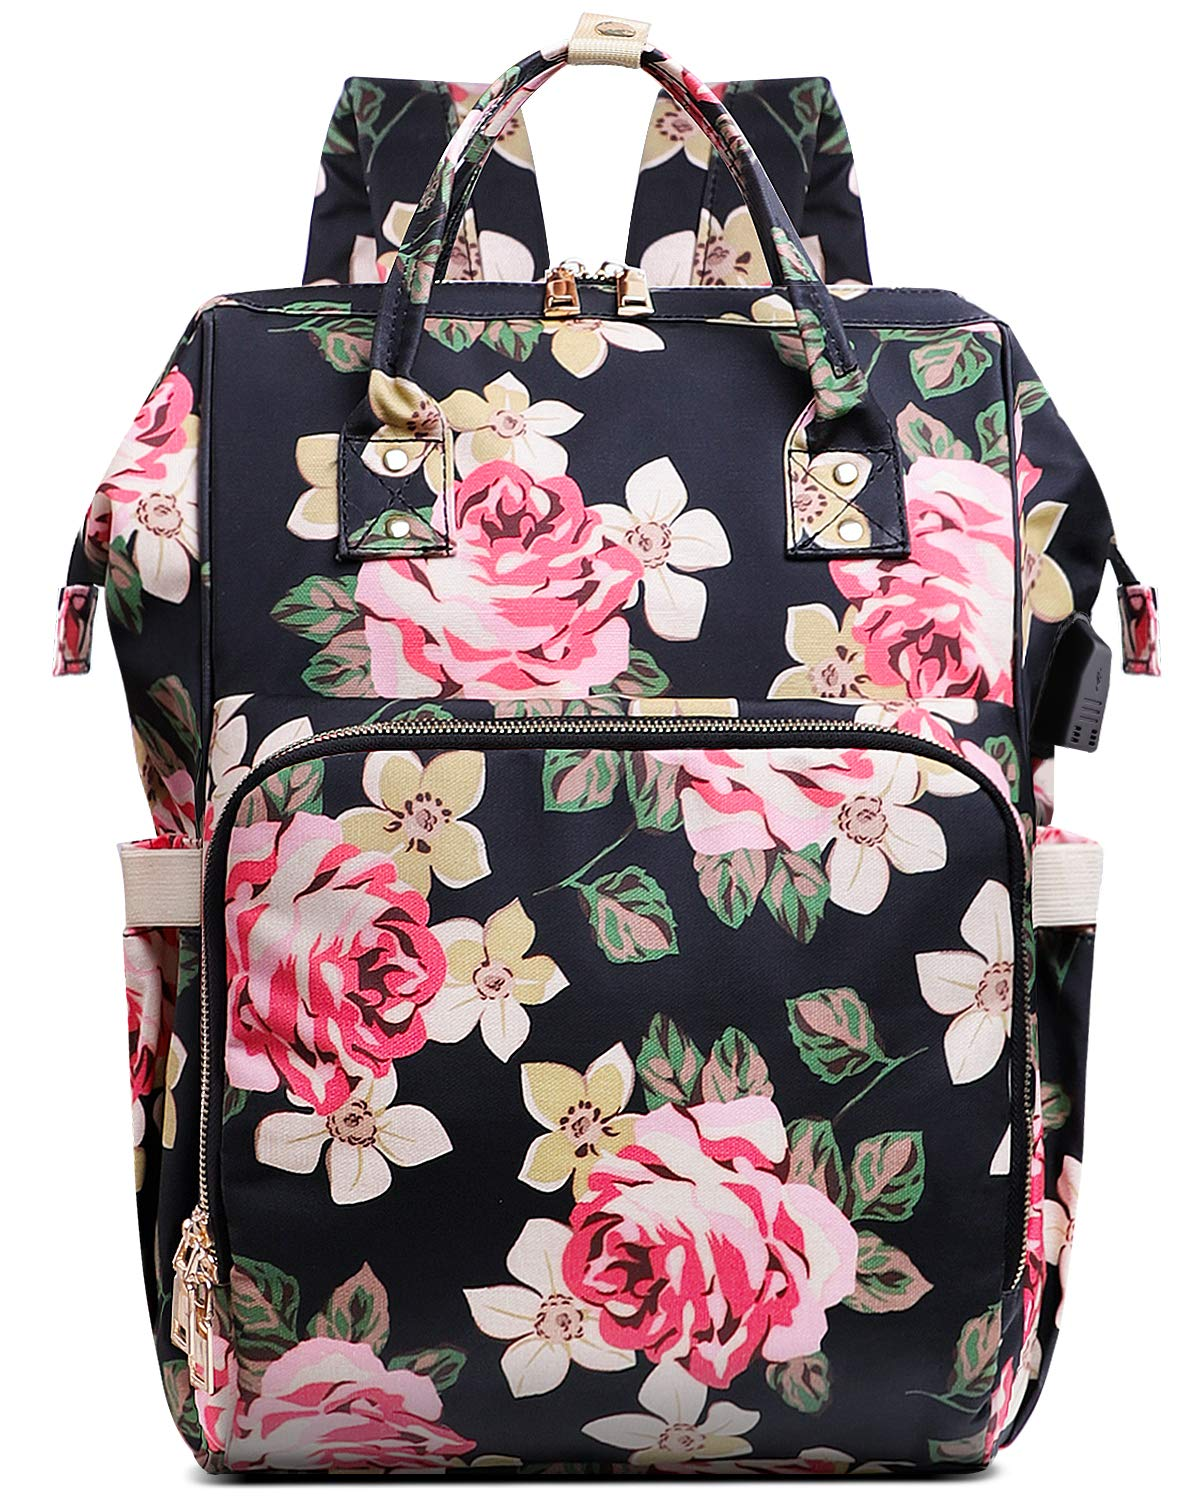 Laptop Backpack,15.6 Inch Stylish College School Backpack with USB Charging Port,Water Resistant Casual Daypack Laptop Backpack for Women/Girls/Business/Travel (Flower Pattern) by VSNOON